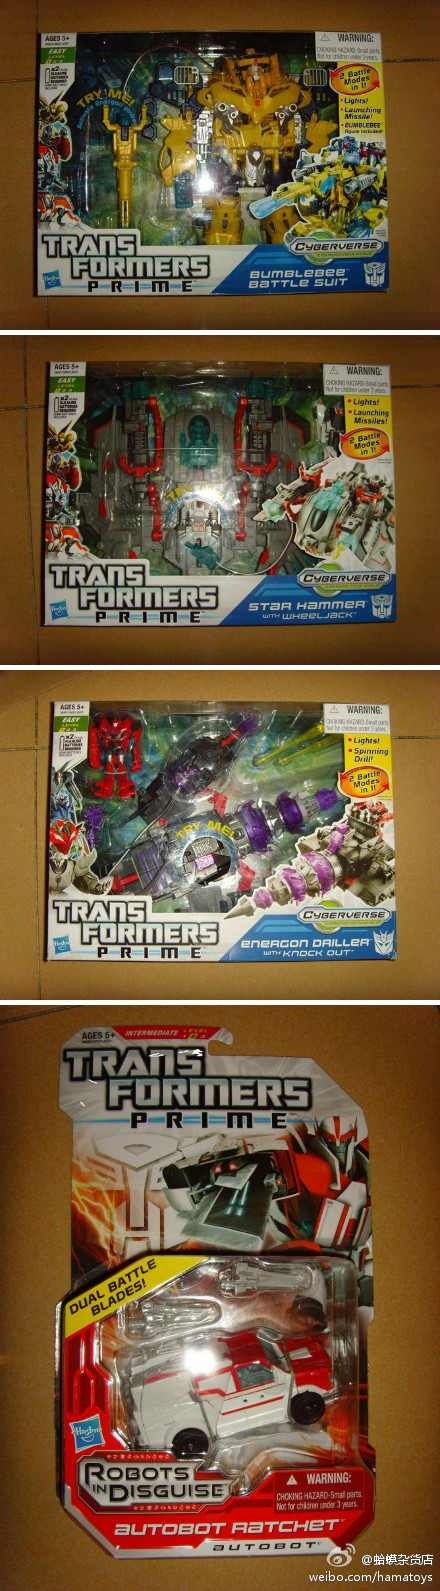 Transformers Prime Playset